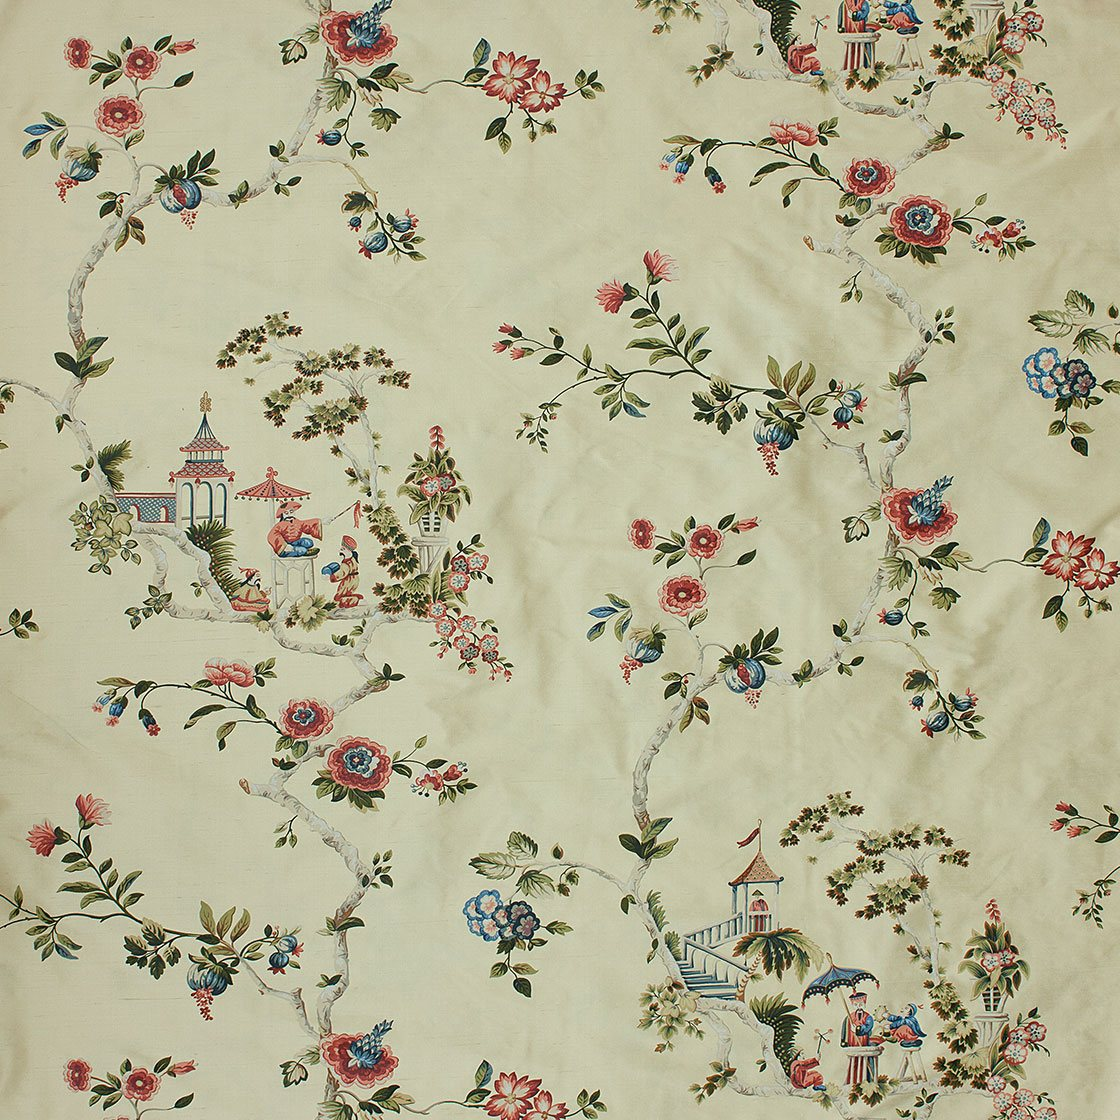 Cathay Printed Silk - Gold Garden - Beaumont & Fletcher - Beaumont & Fletcher